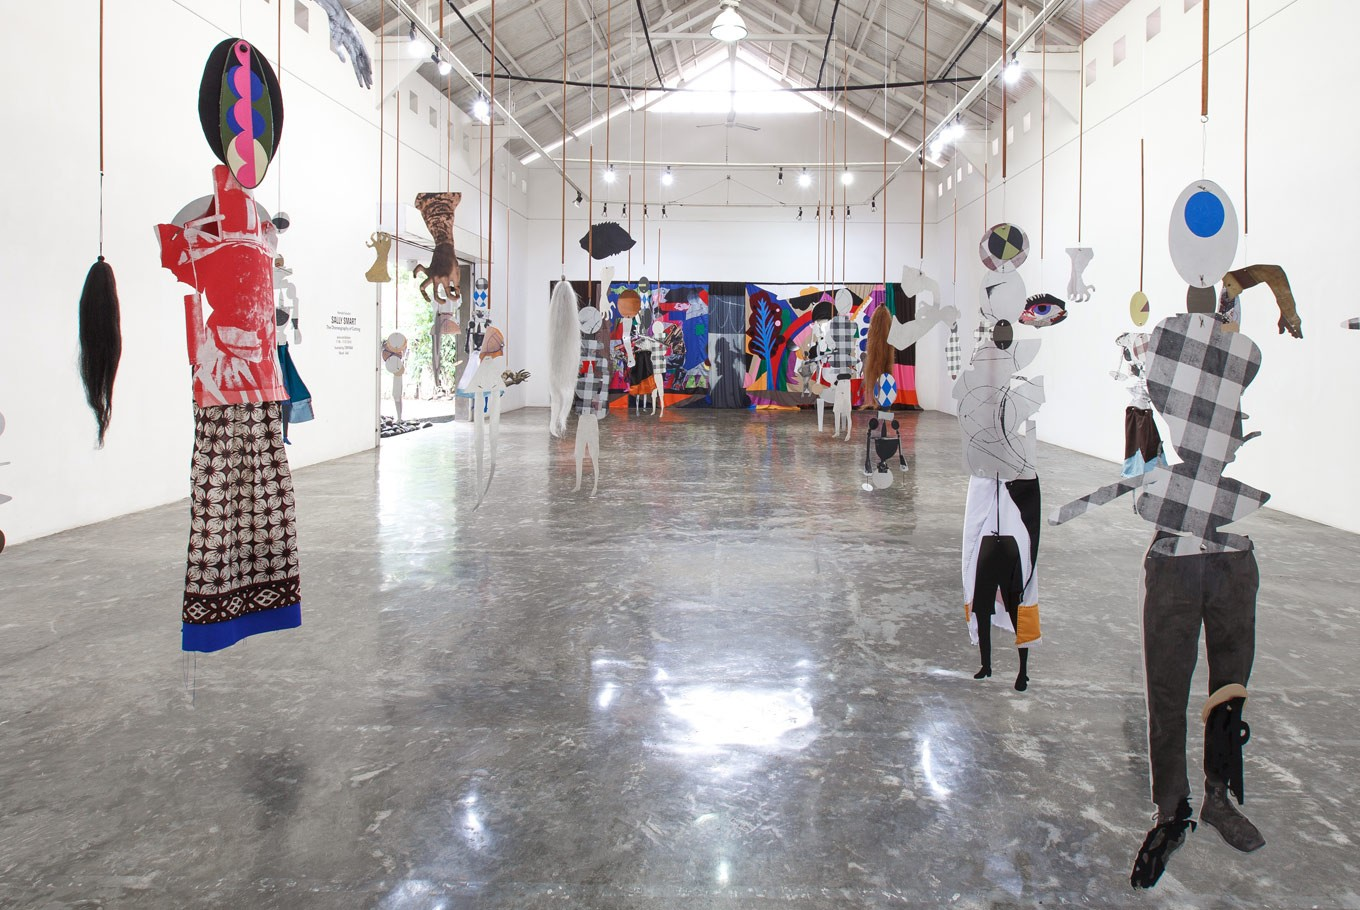 Puppets are suspended at the Tony Raka Art Gallery in Sally Smart's solo exhibit, 'The Choreography of Cutting'.